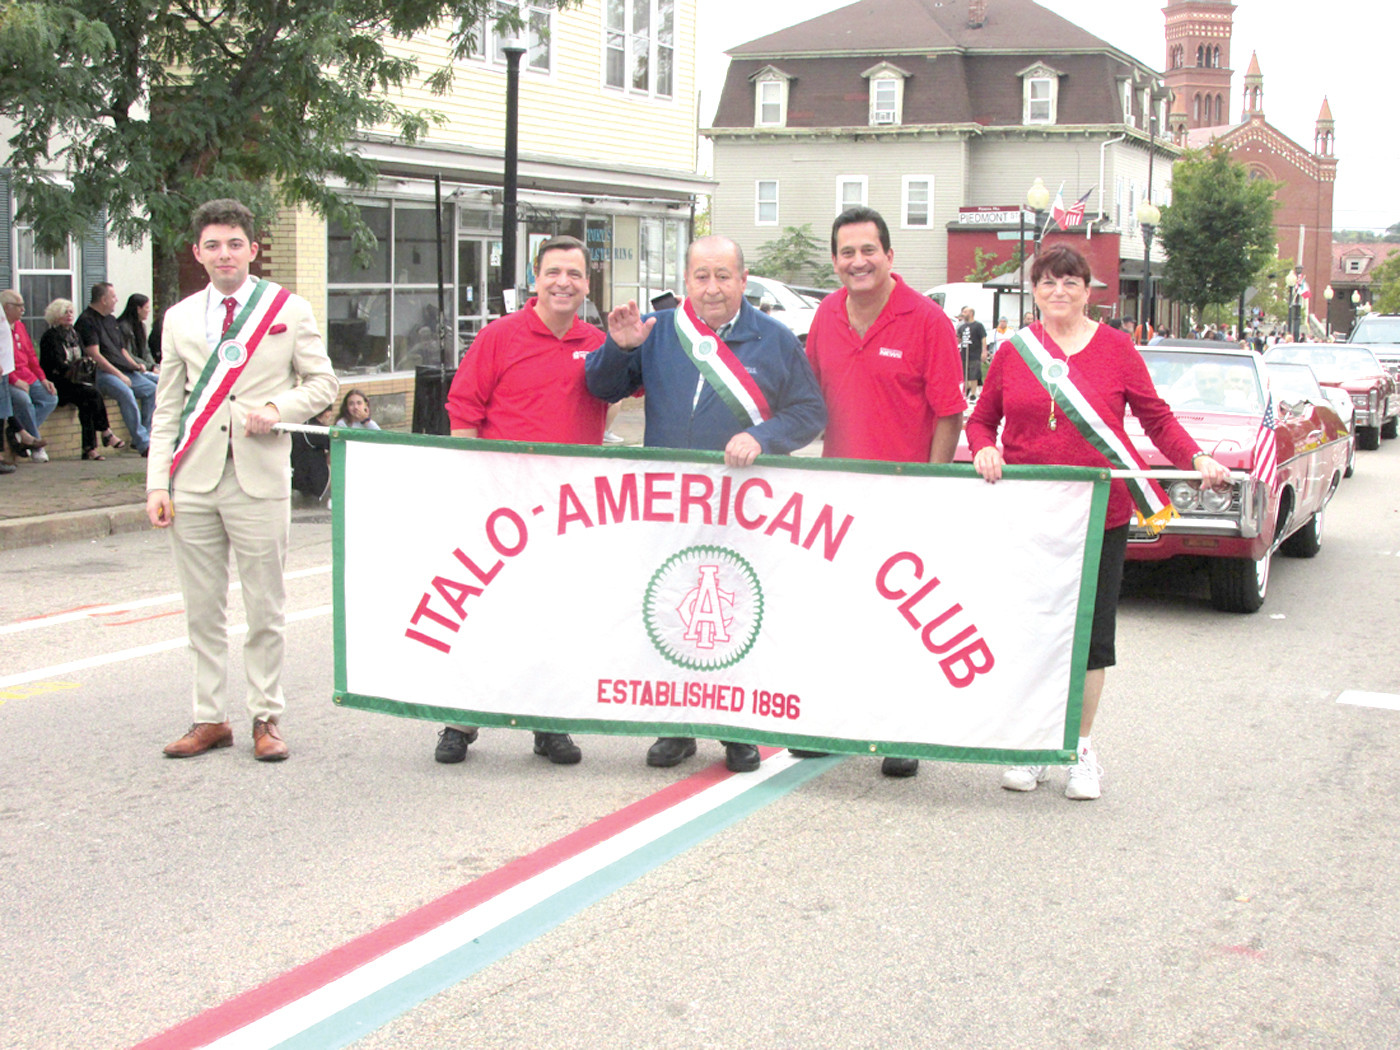 PROUD PACK: Johnston residents Carmine DeRobbio (center), Linda Folcarelli and Ron Giorgio honored their Italian-American heritage by carrying the Italo-American Club's banner in Sunday's Columbus Day Parade. They're joined by WPRI-TV personalities Tony Petrarca and Mike Montecalvo.